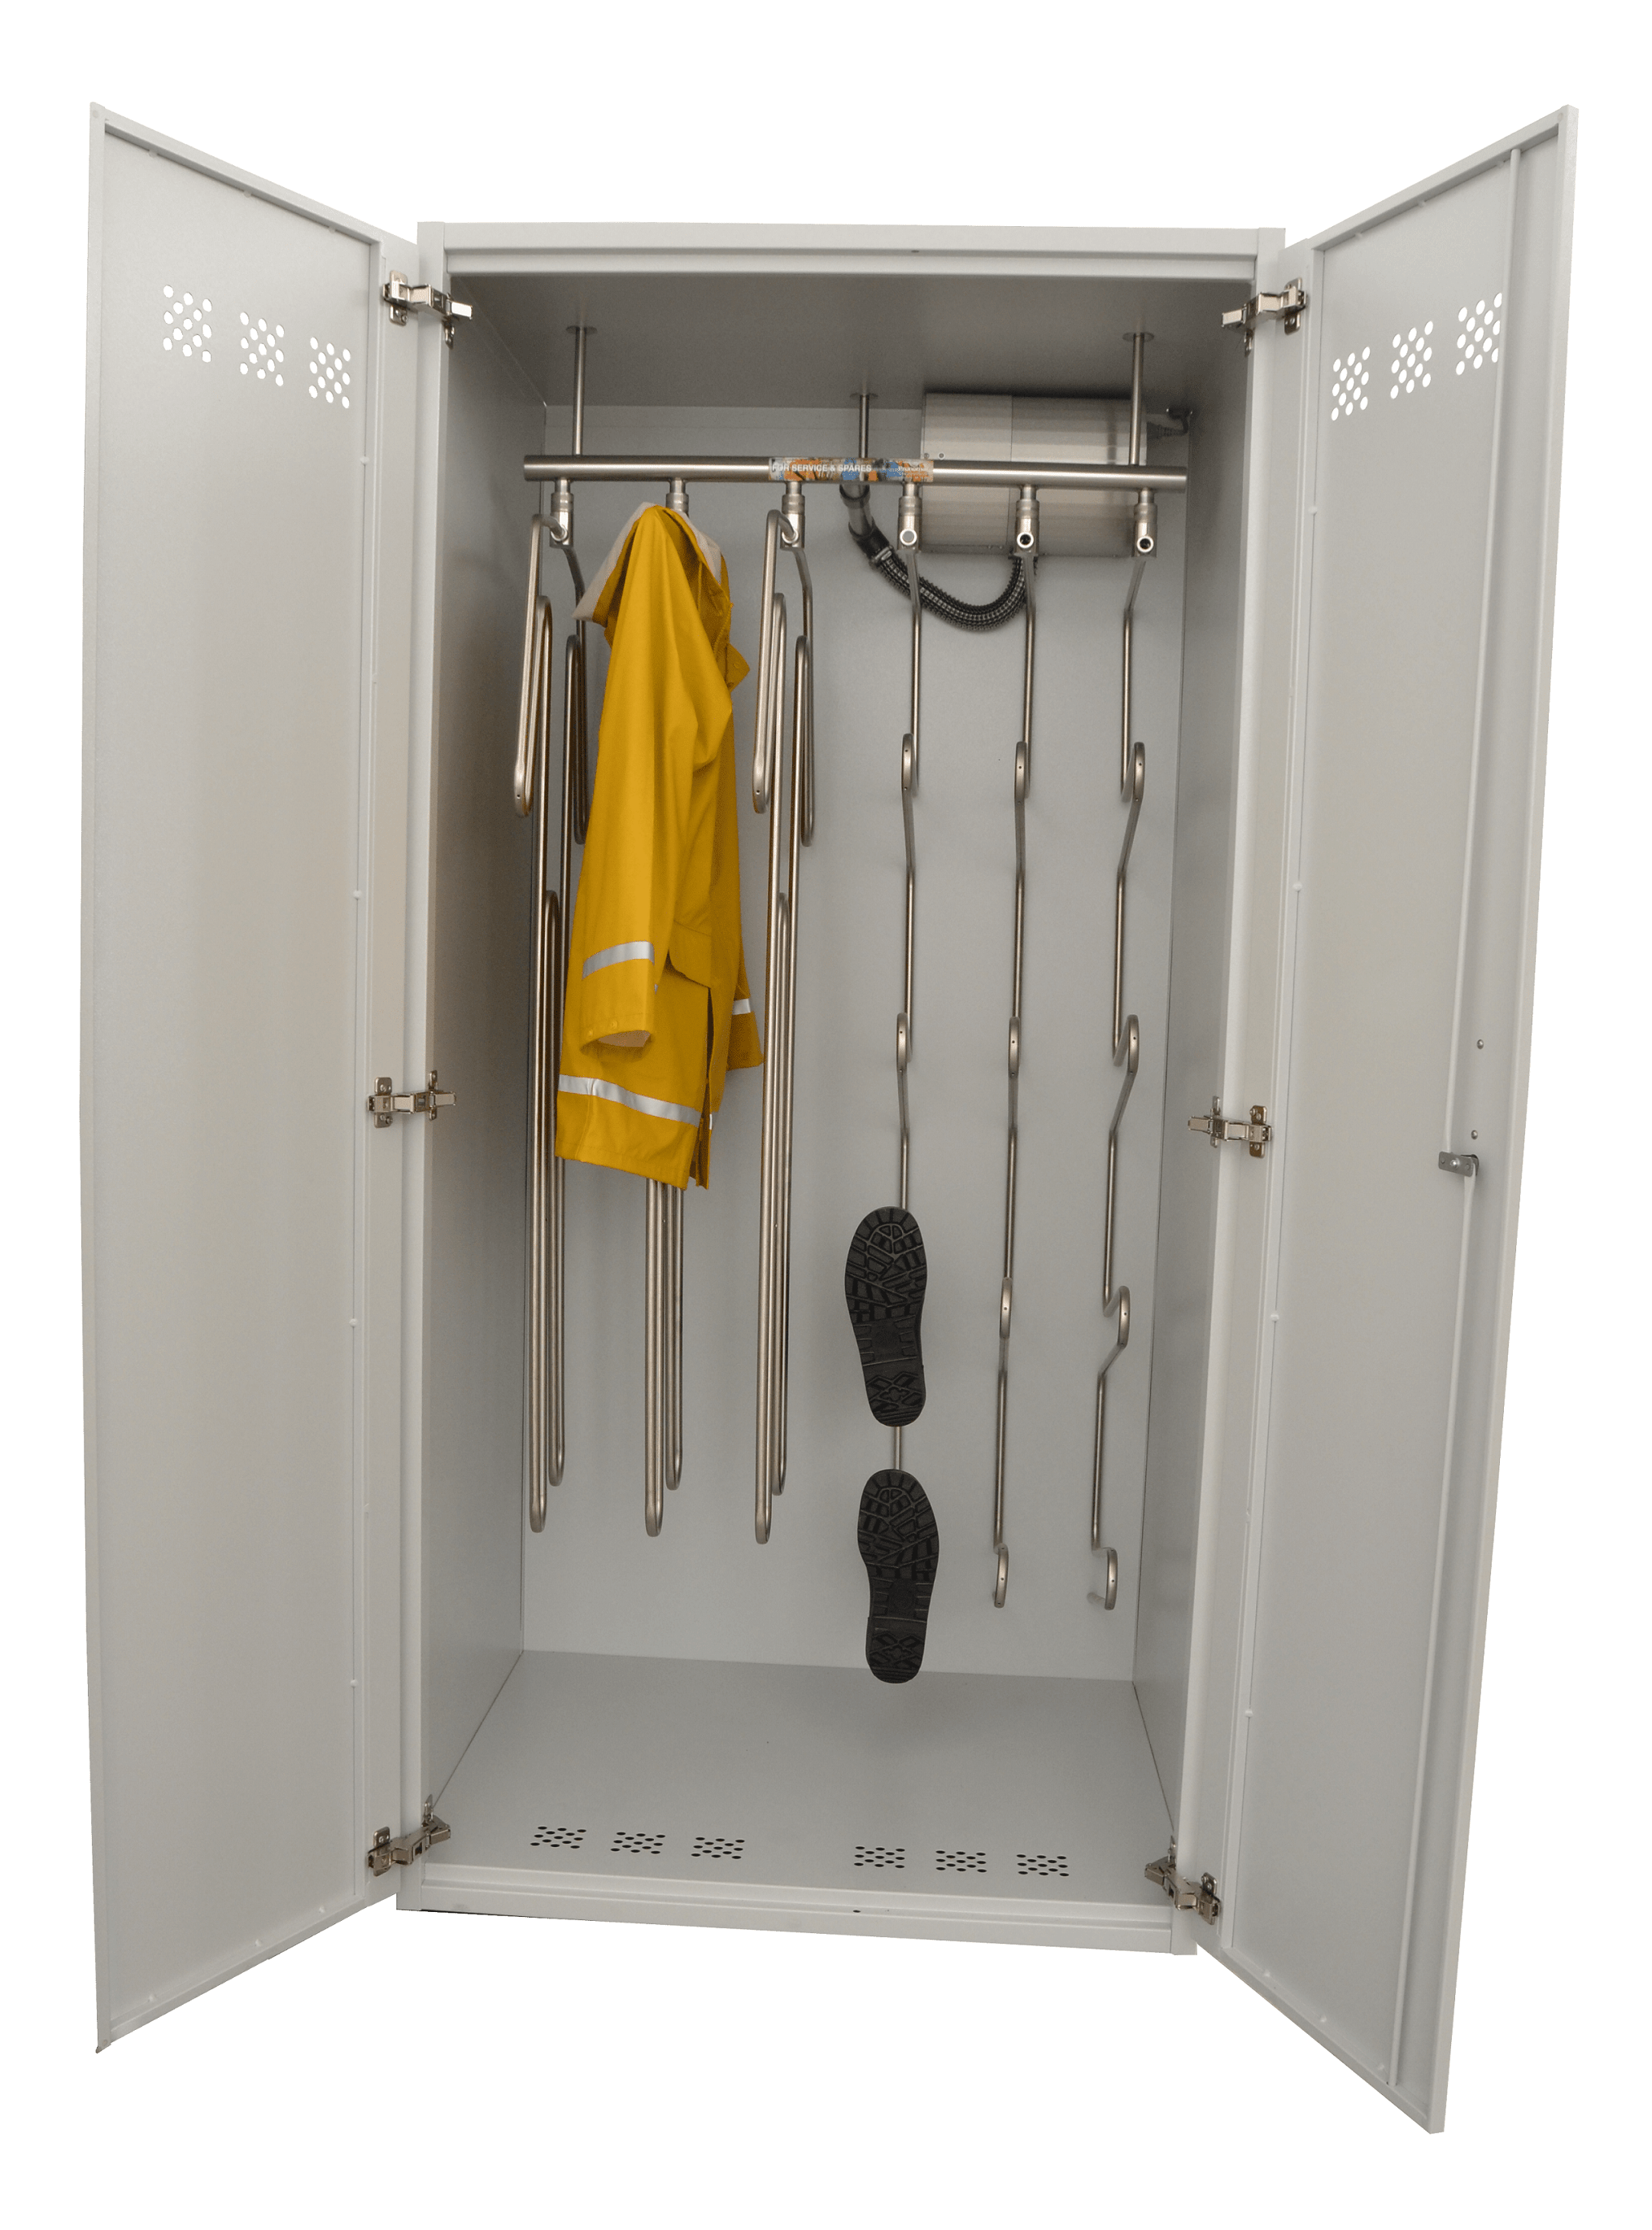 drying cabinet for jackets and boots with warm air